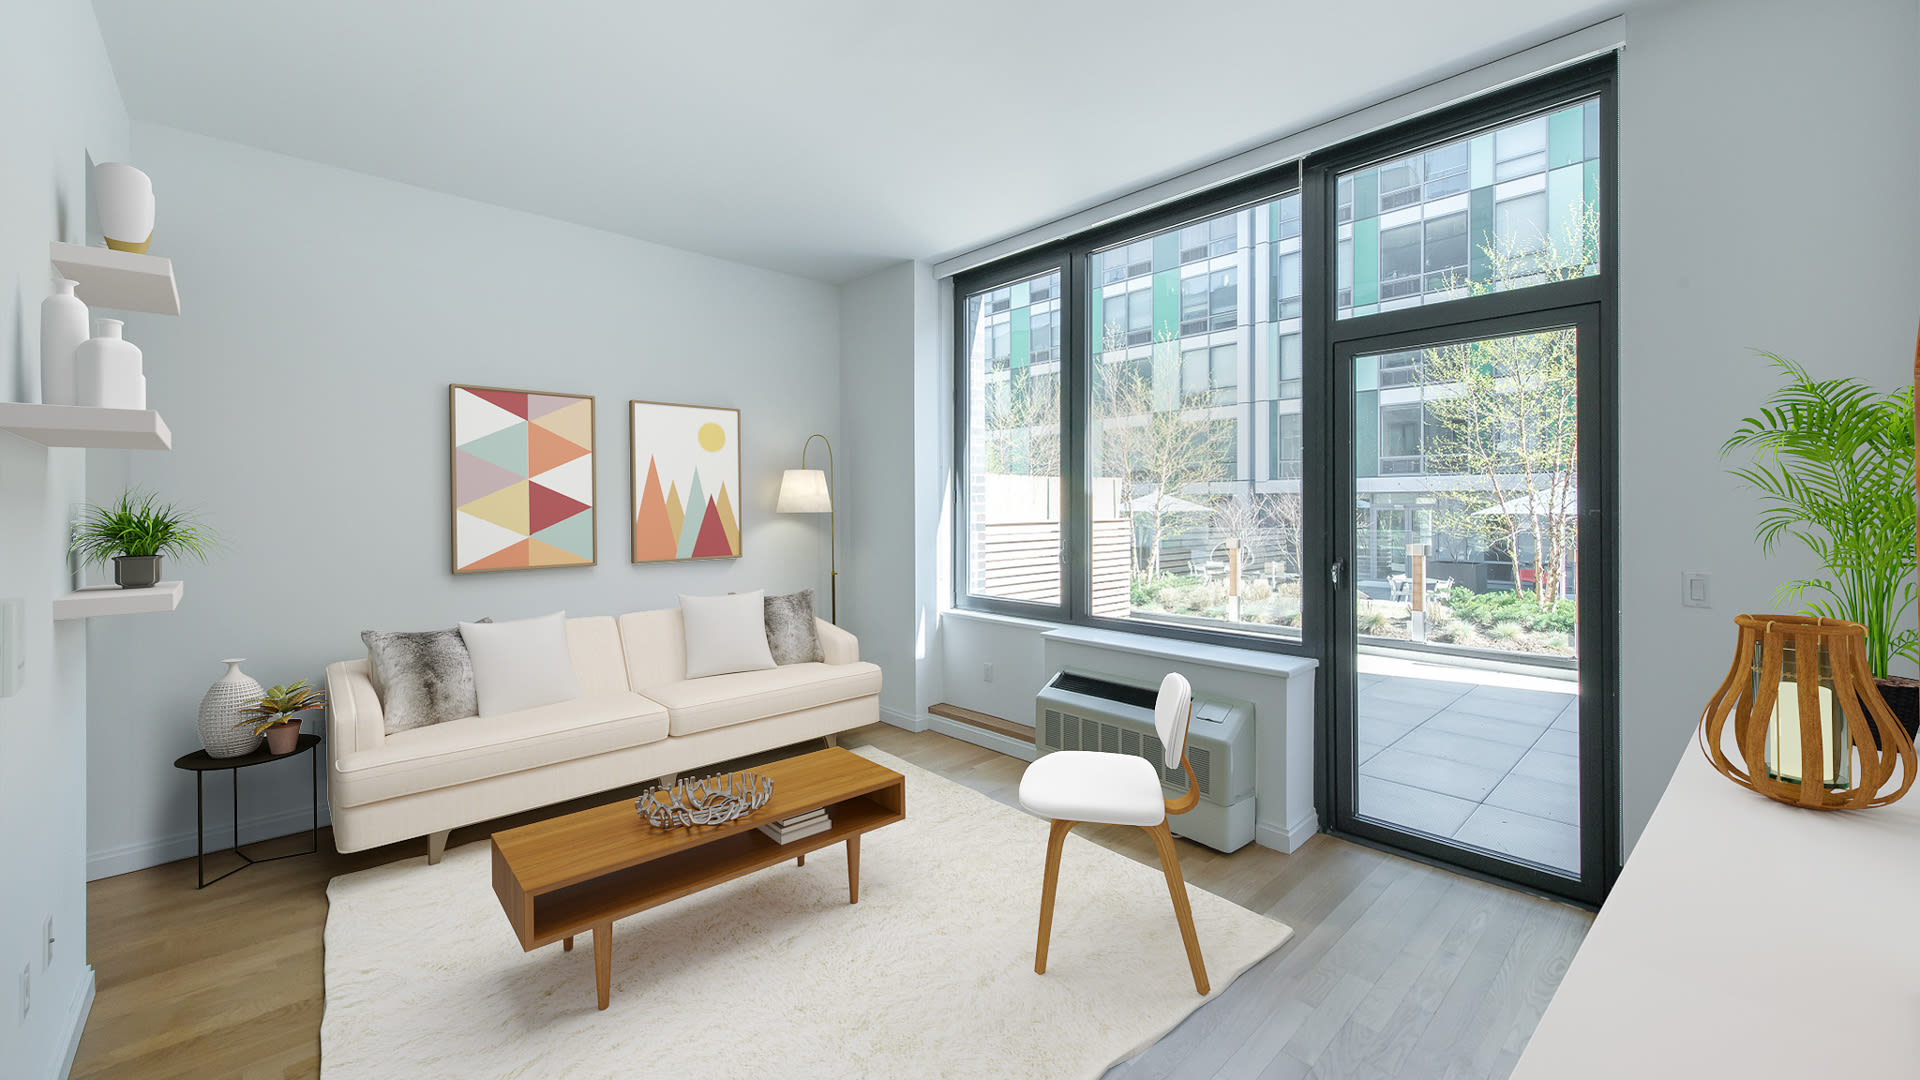 Atelier Apartments - Living Room with Hardwood Floors and Balcony